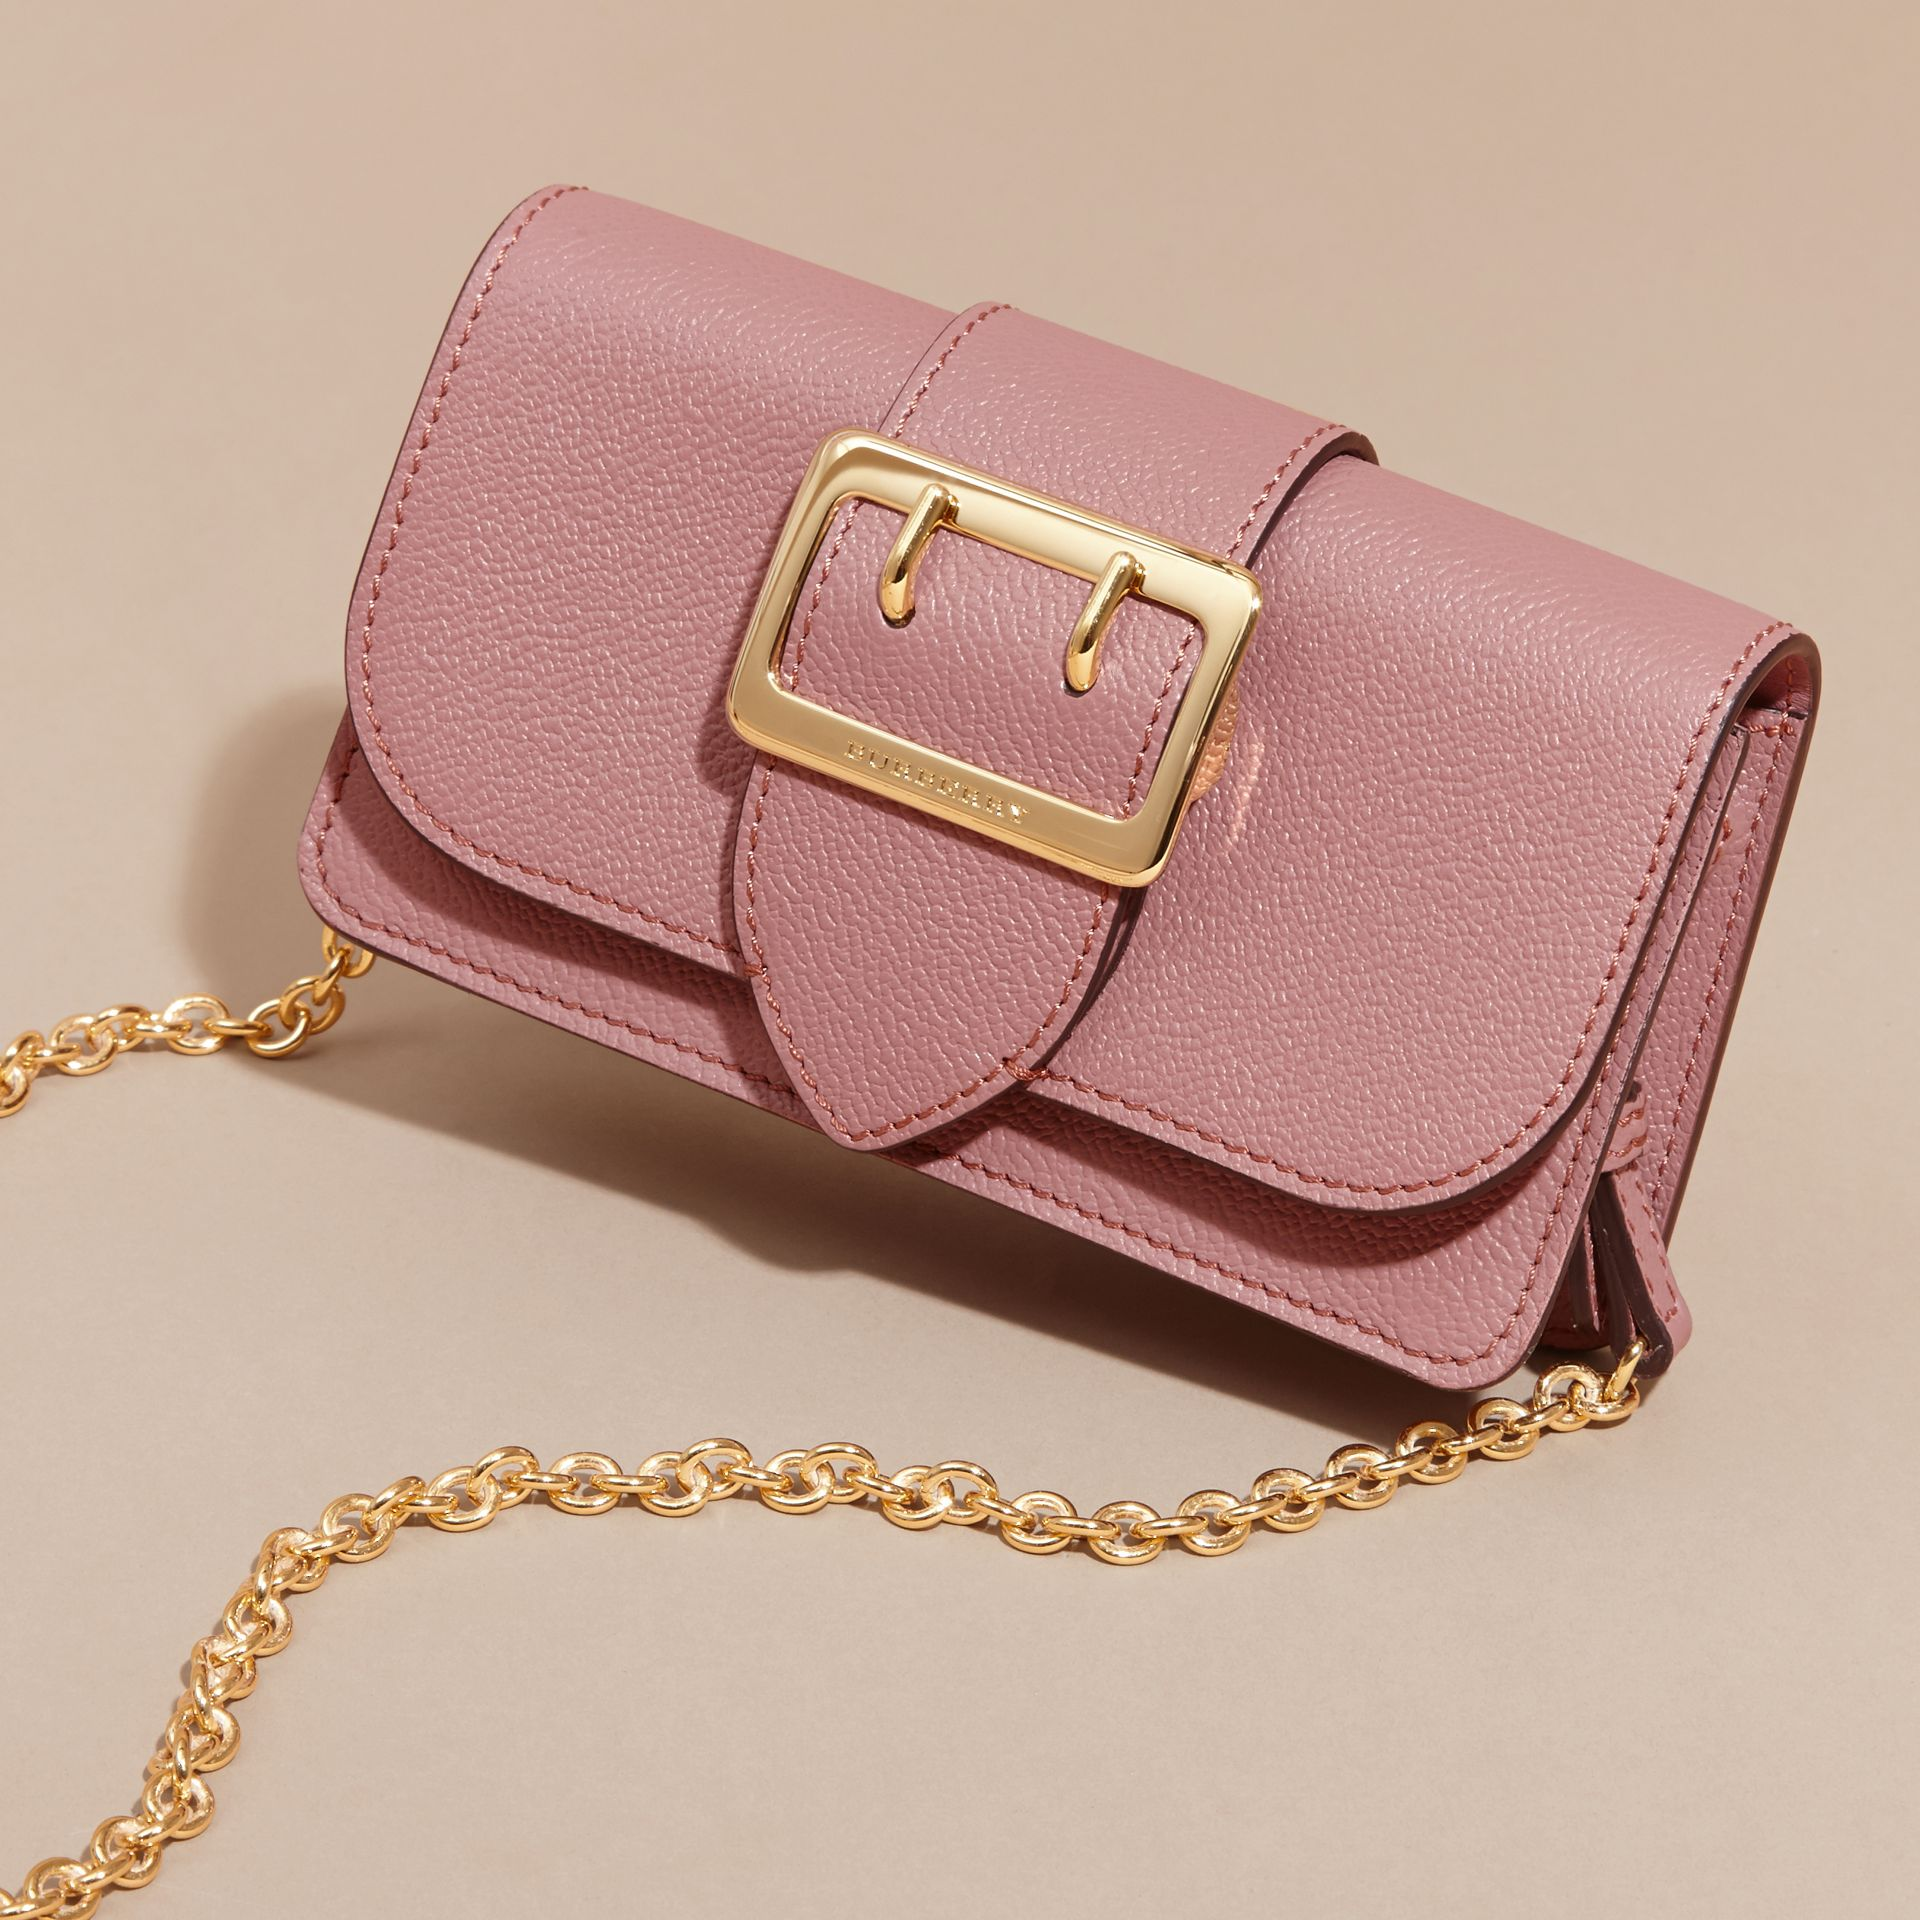 The Mini Buckle Bag in Grainy Leather in Dusty Pink - Women | Burberry - gallery image 7